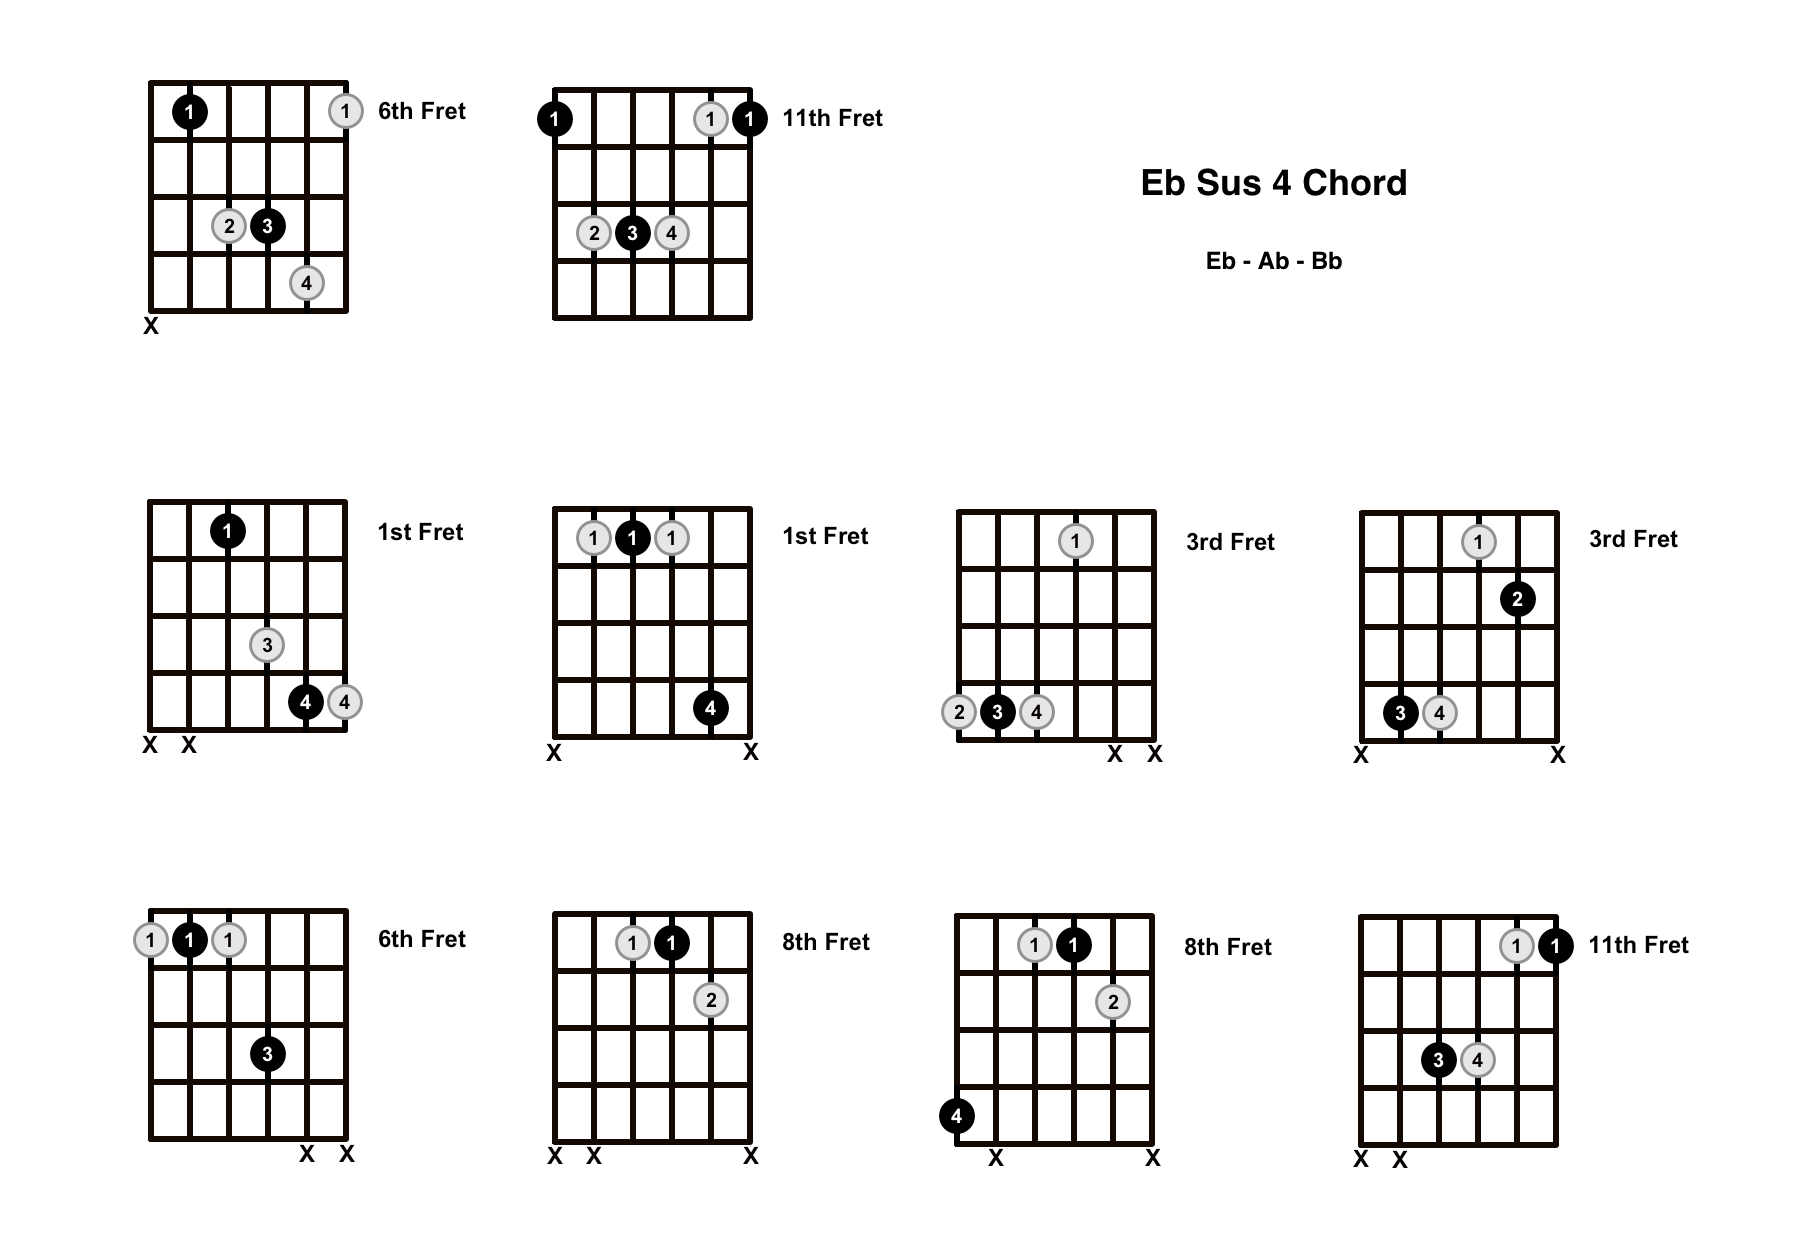 Eb Sus 4 Chord On The Guitar (E Flat Suspended 4) – Diagrams, Finger Positions and Theory